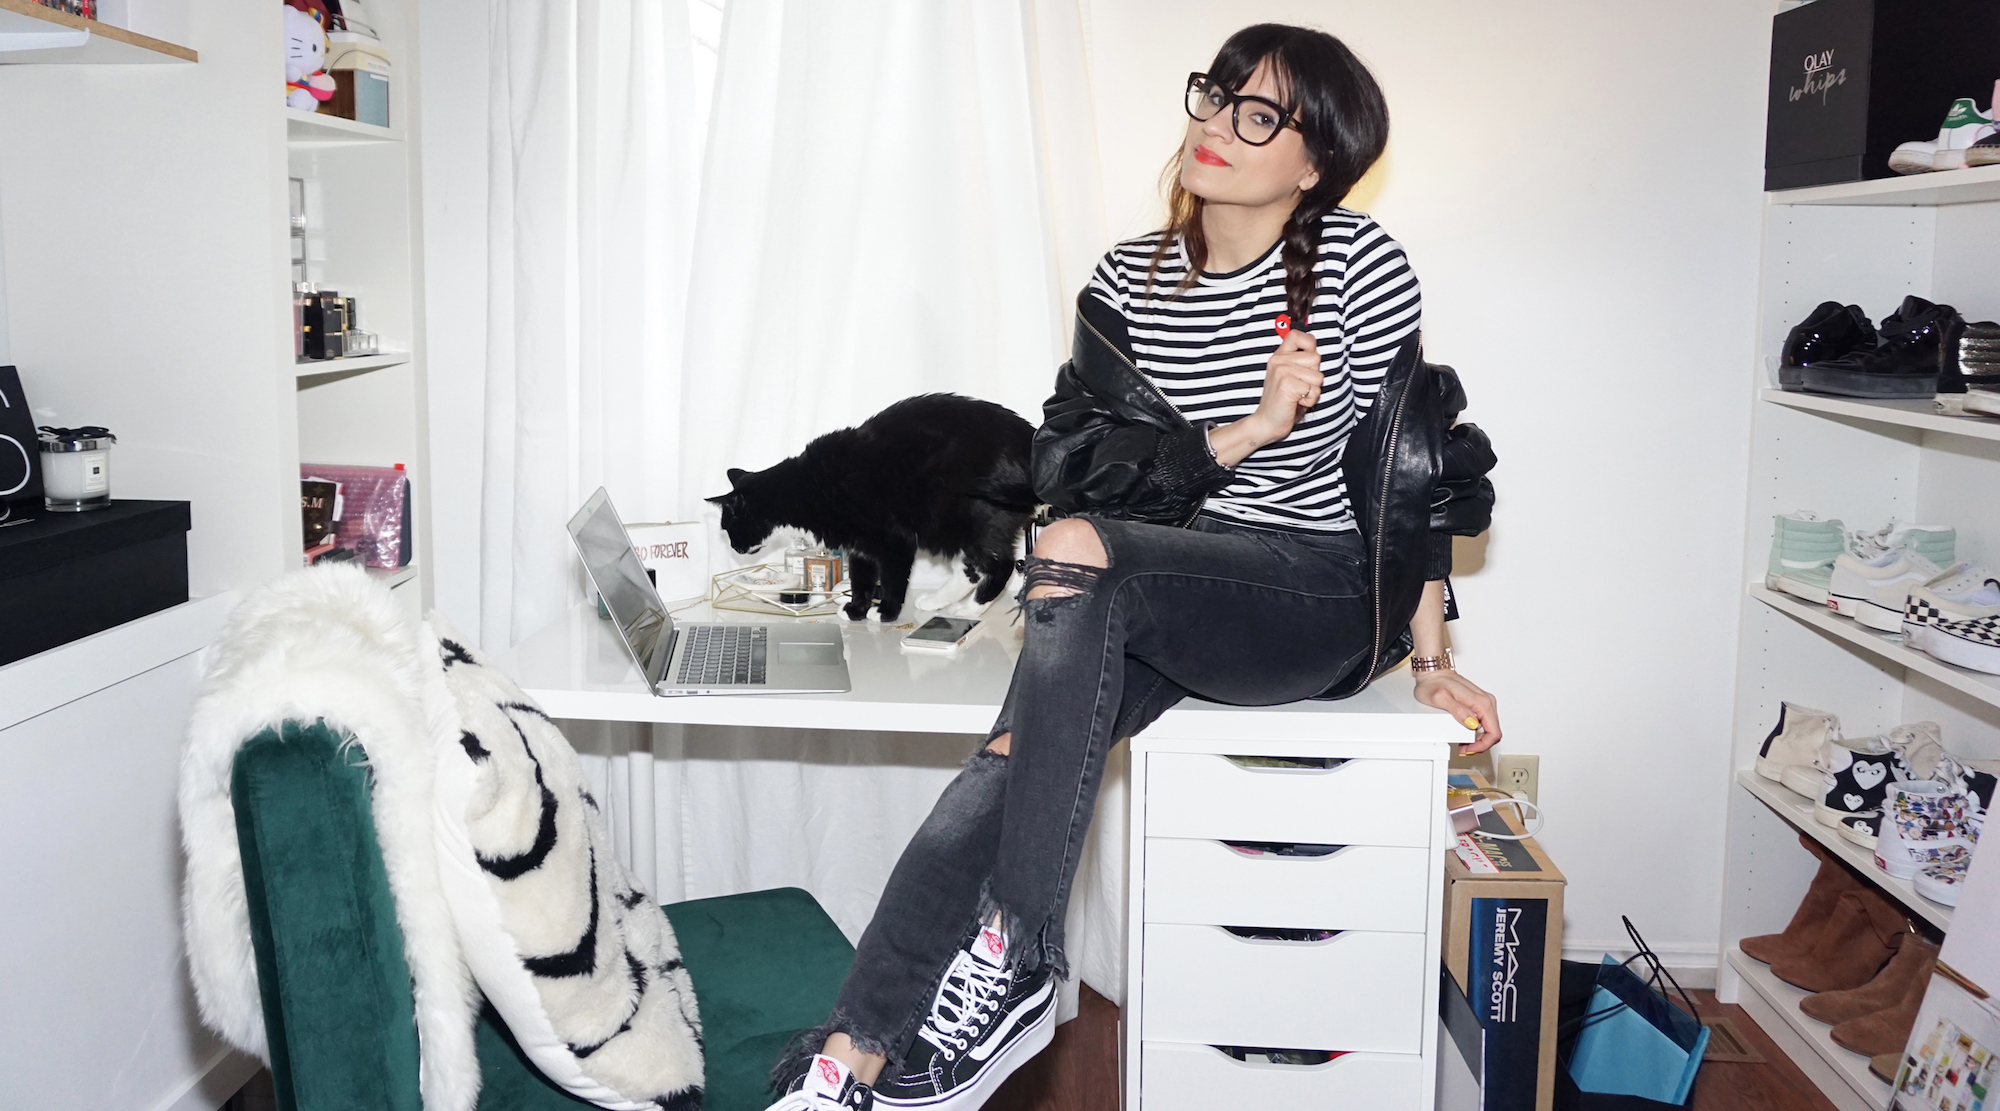 iro leather bomber jacket and black vans platform sneakers - at home office closet home decor woahstyle.com.jpg